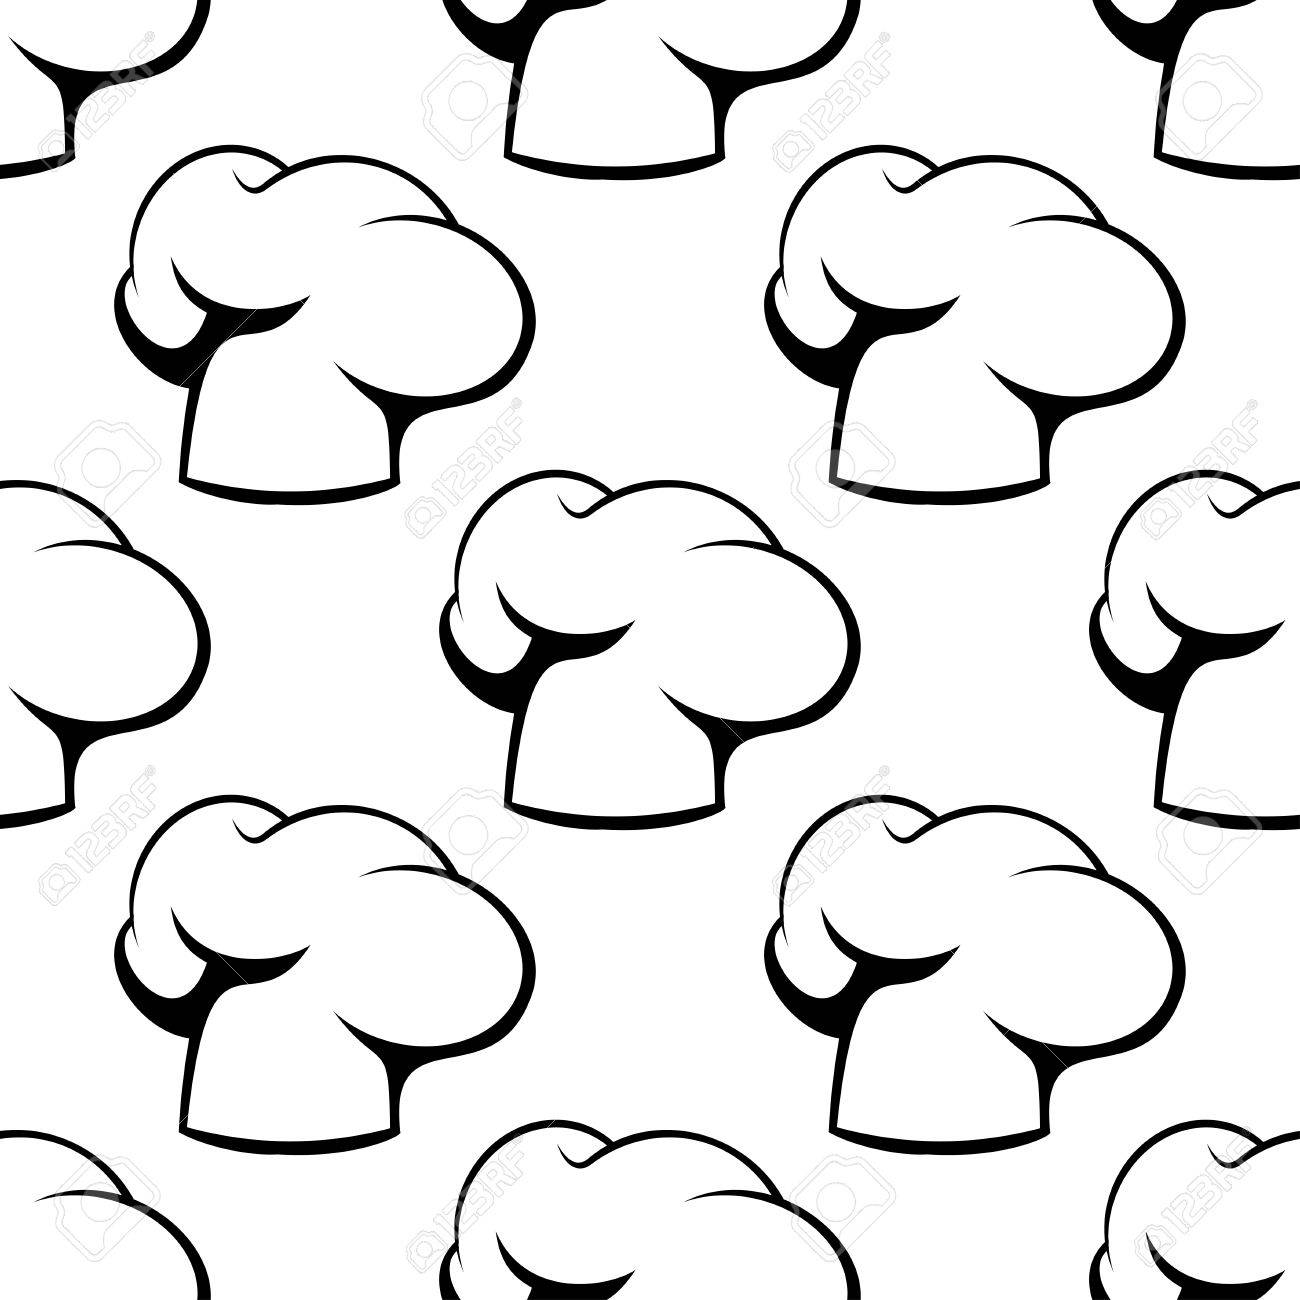 classic chef hats and toques outline seamless pattern in white